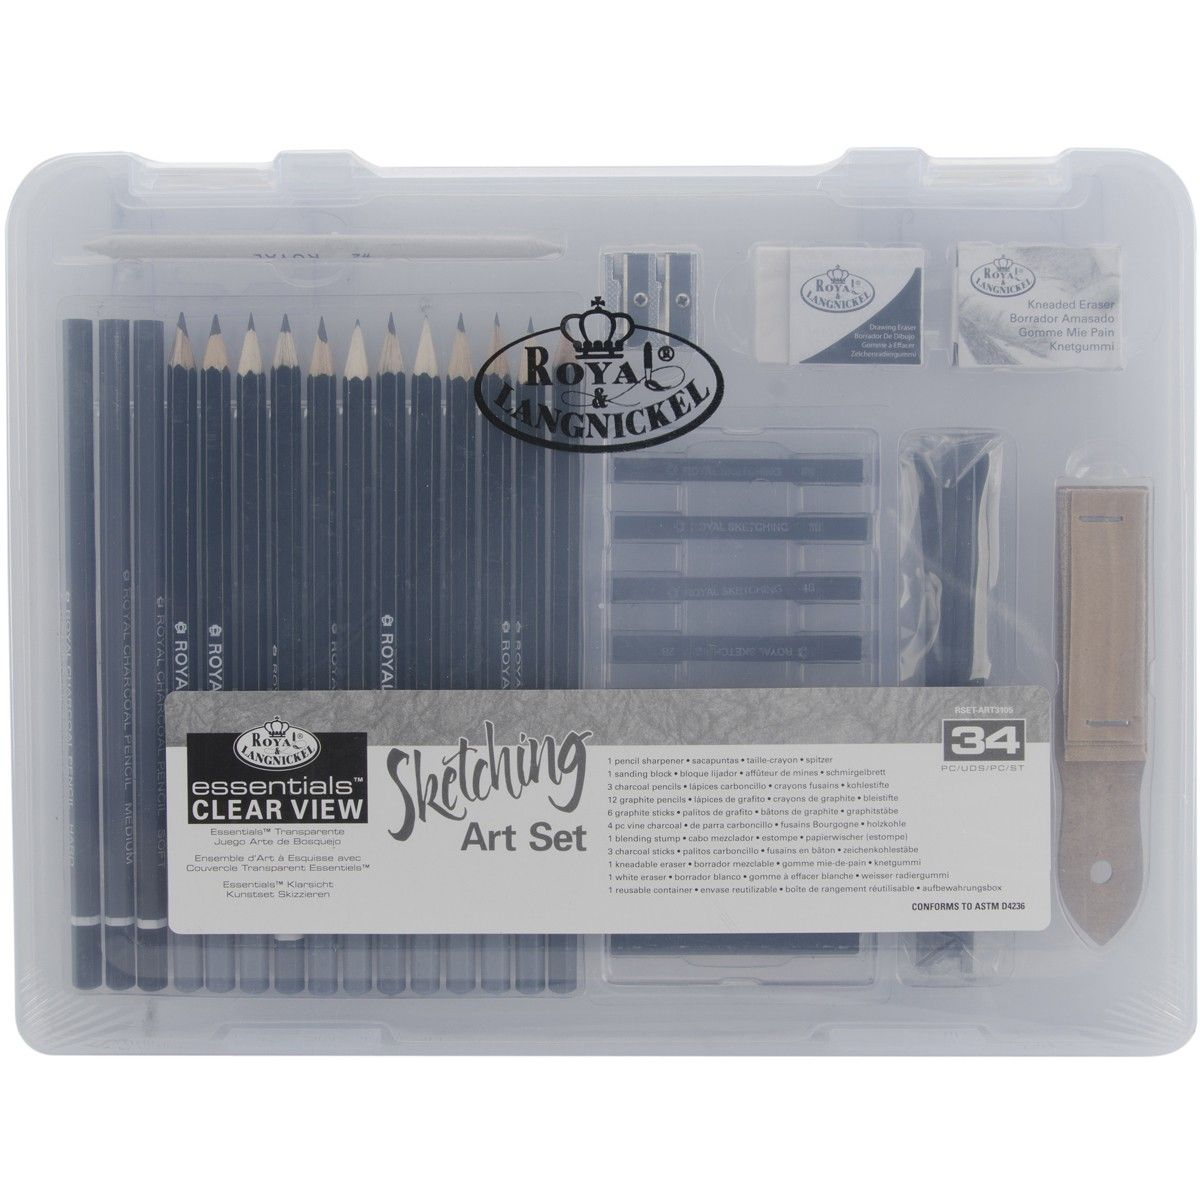 clearview small sketching art set rset3105 19 99 artist gifts